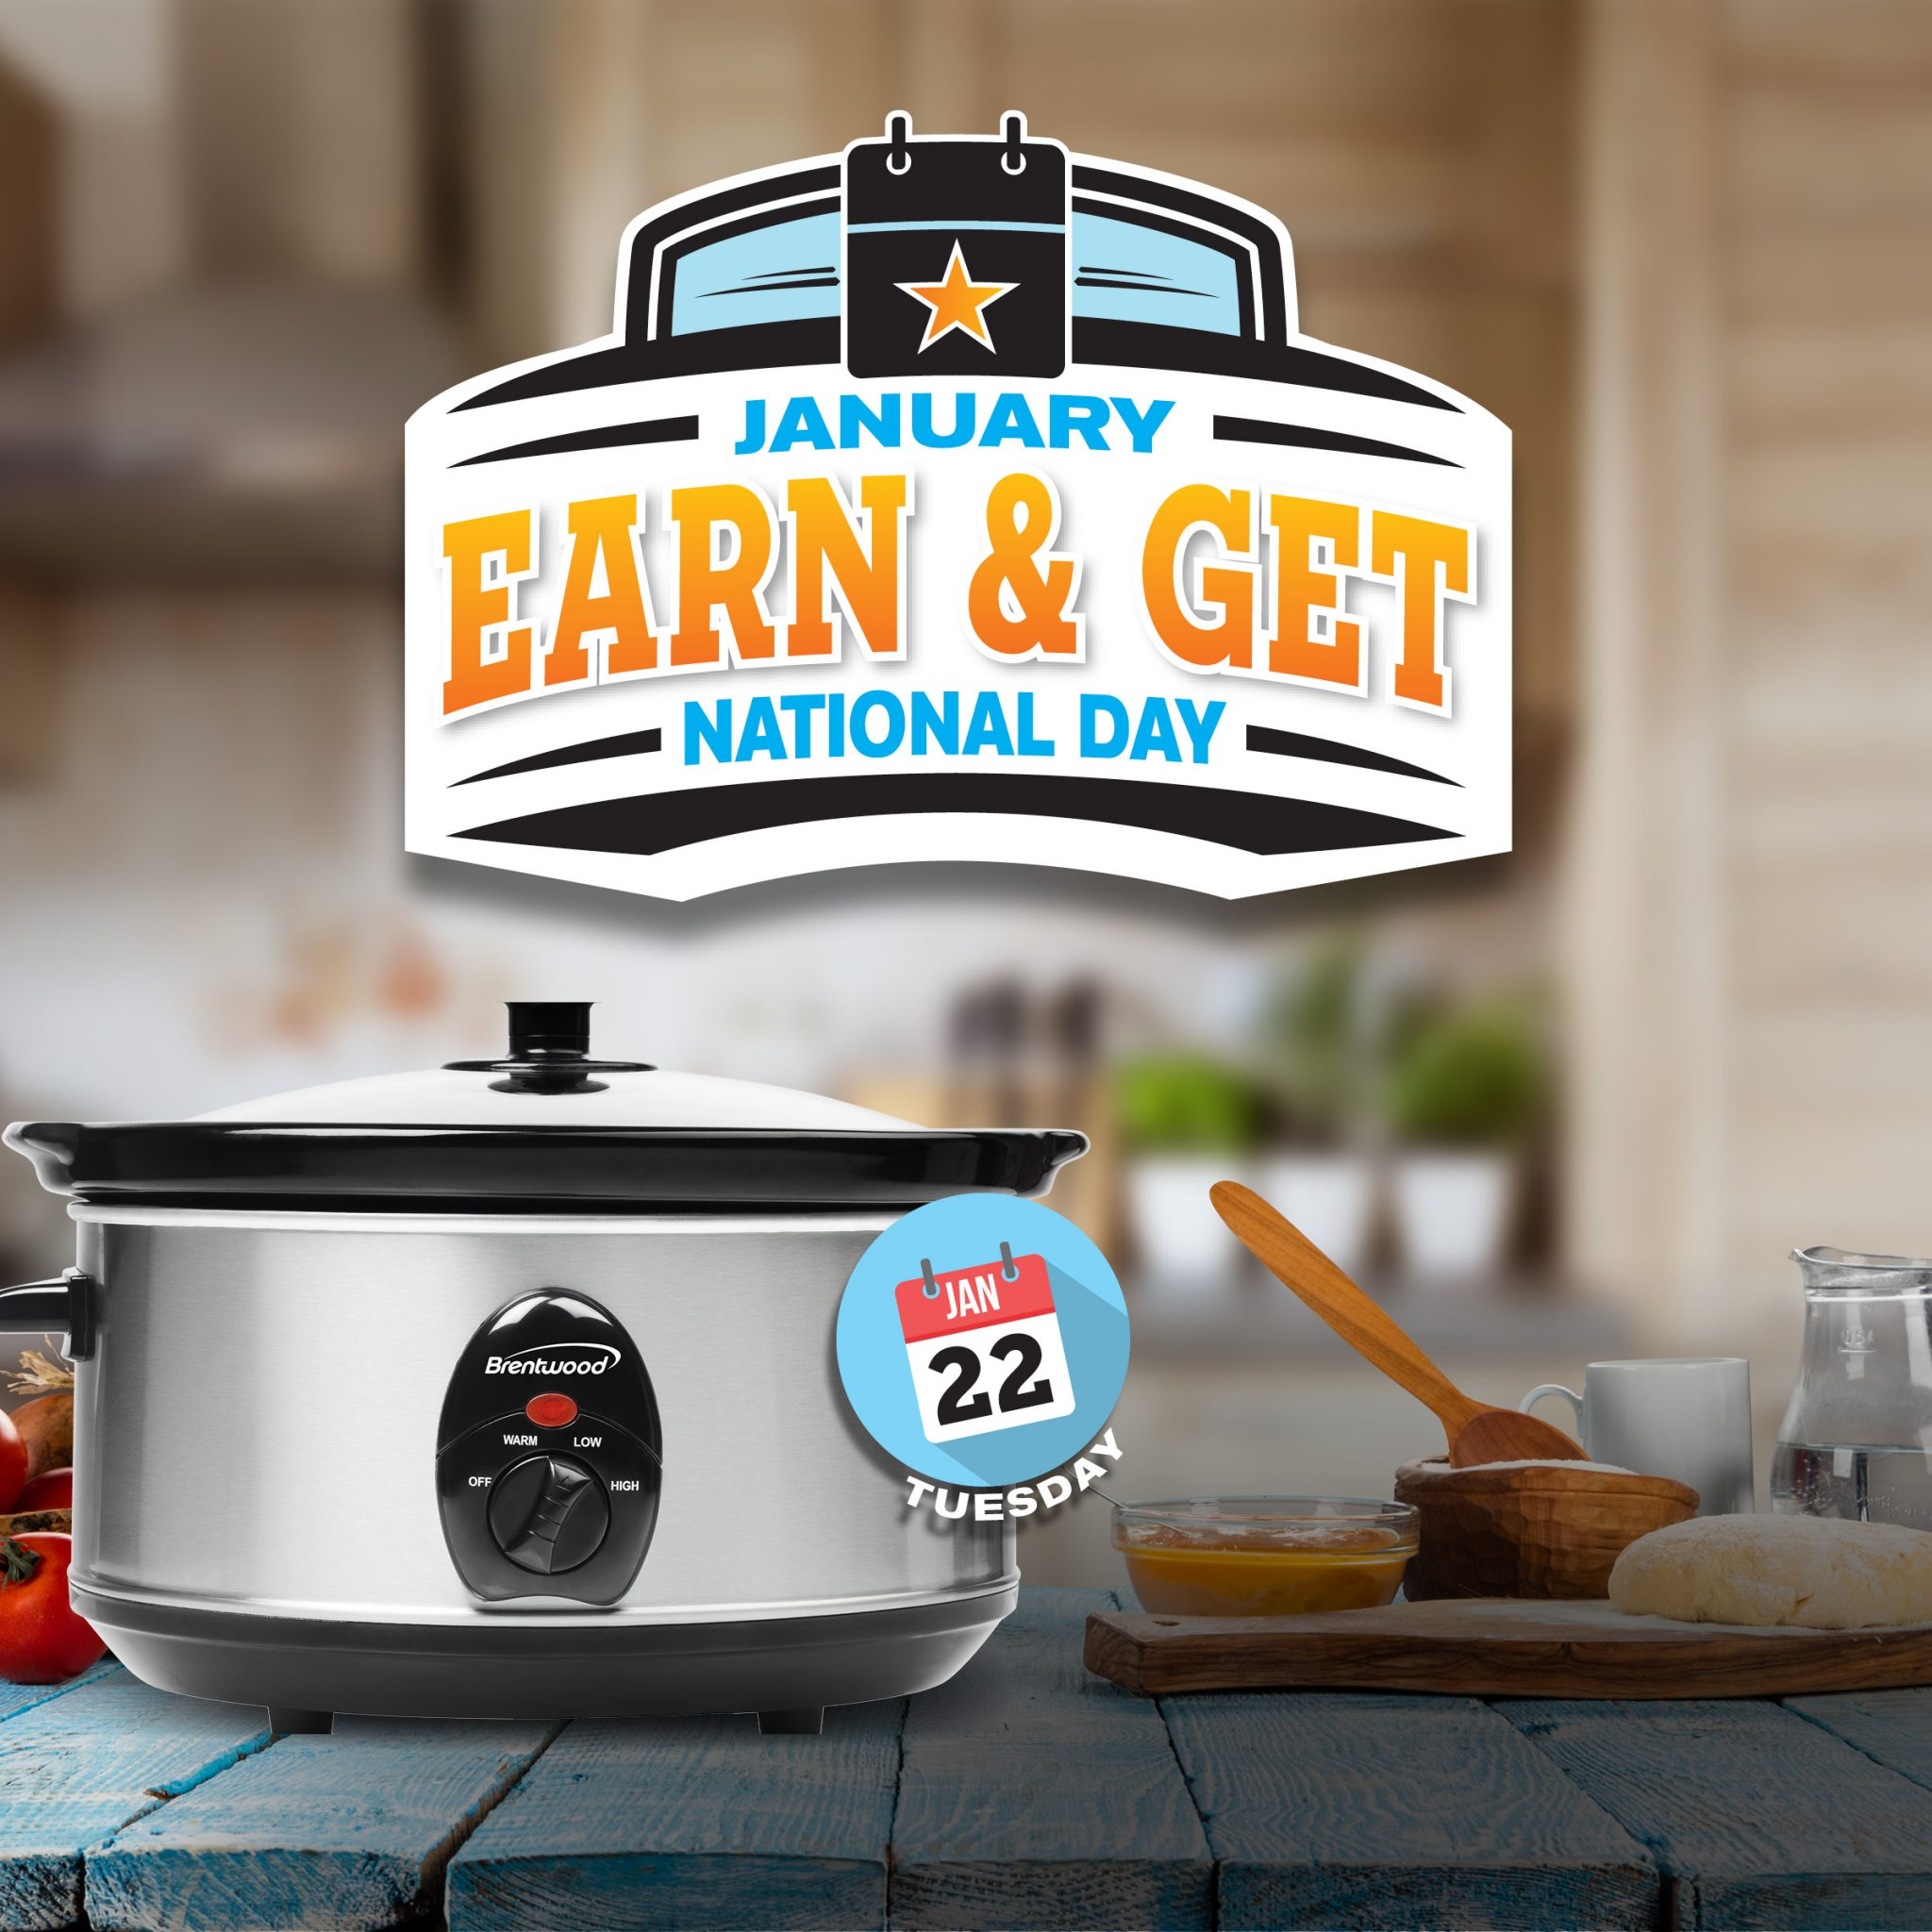 National Day Earn & Get – Slow Cooker